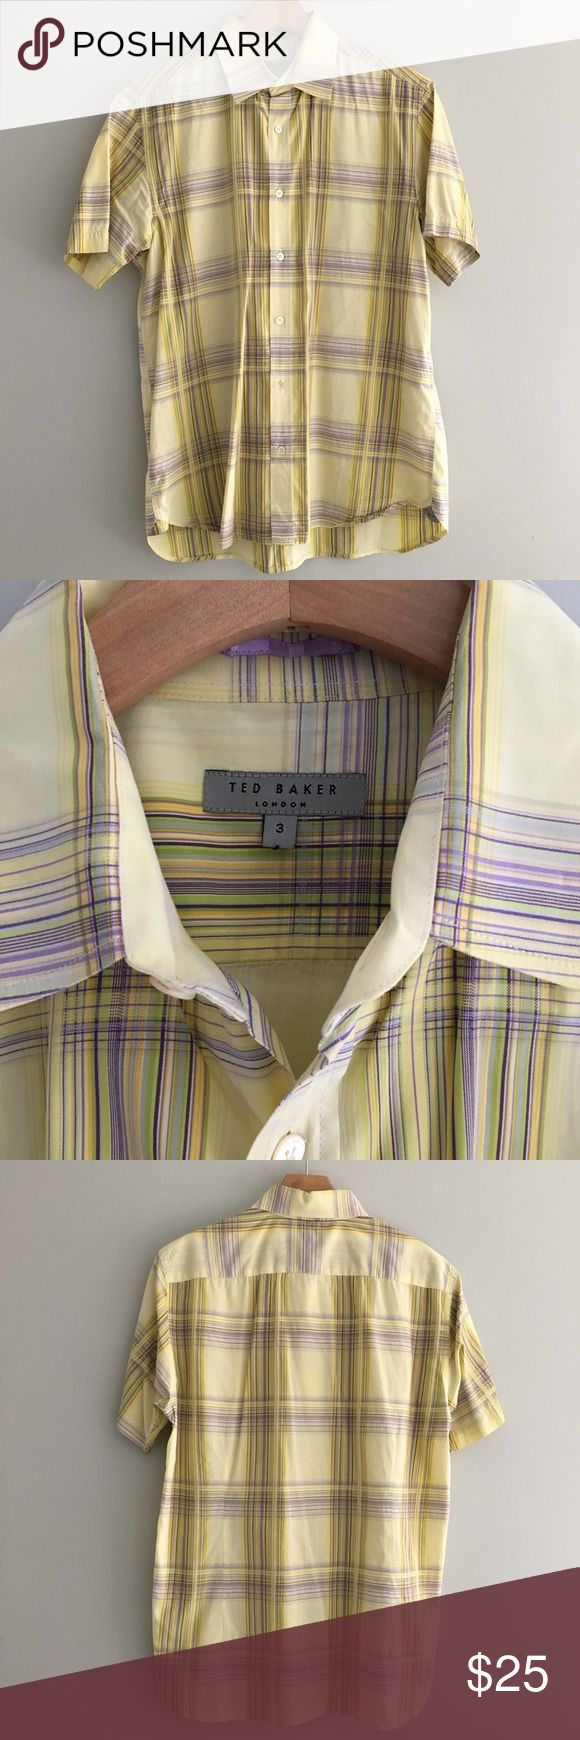 "Men's Ted Baker Short Sleeve Plaid Shirt Men's Ted Baker short sleeve bottom down woven shirt in yellow plaid with touches of green, blue, and purple.  Front measures 27"" and back measures 28"" from shoulder to hem. No signs of damage from previous wears.  Size 3 in UK sizing is a medium in the USA. Ted Baker Shirts Casual Button Down Shirts"